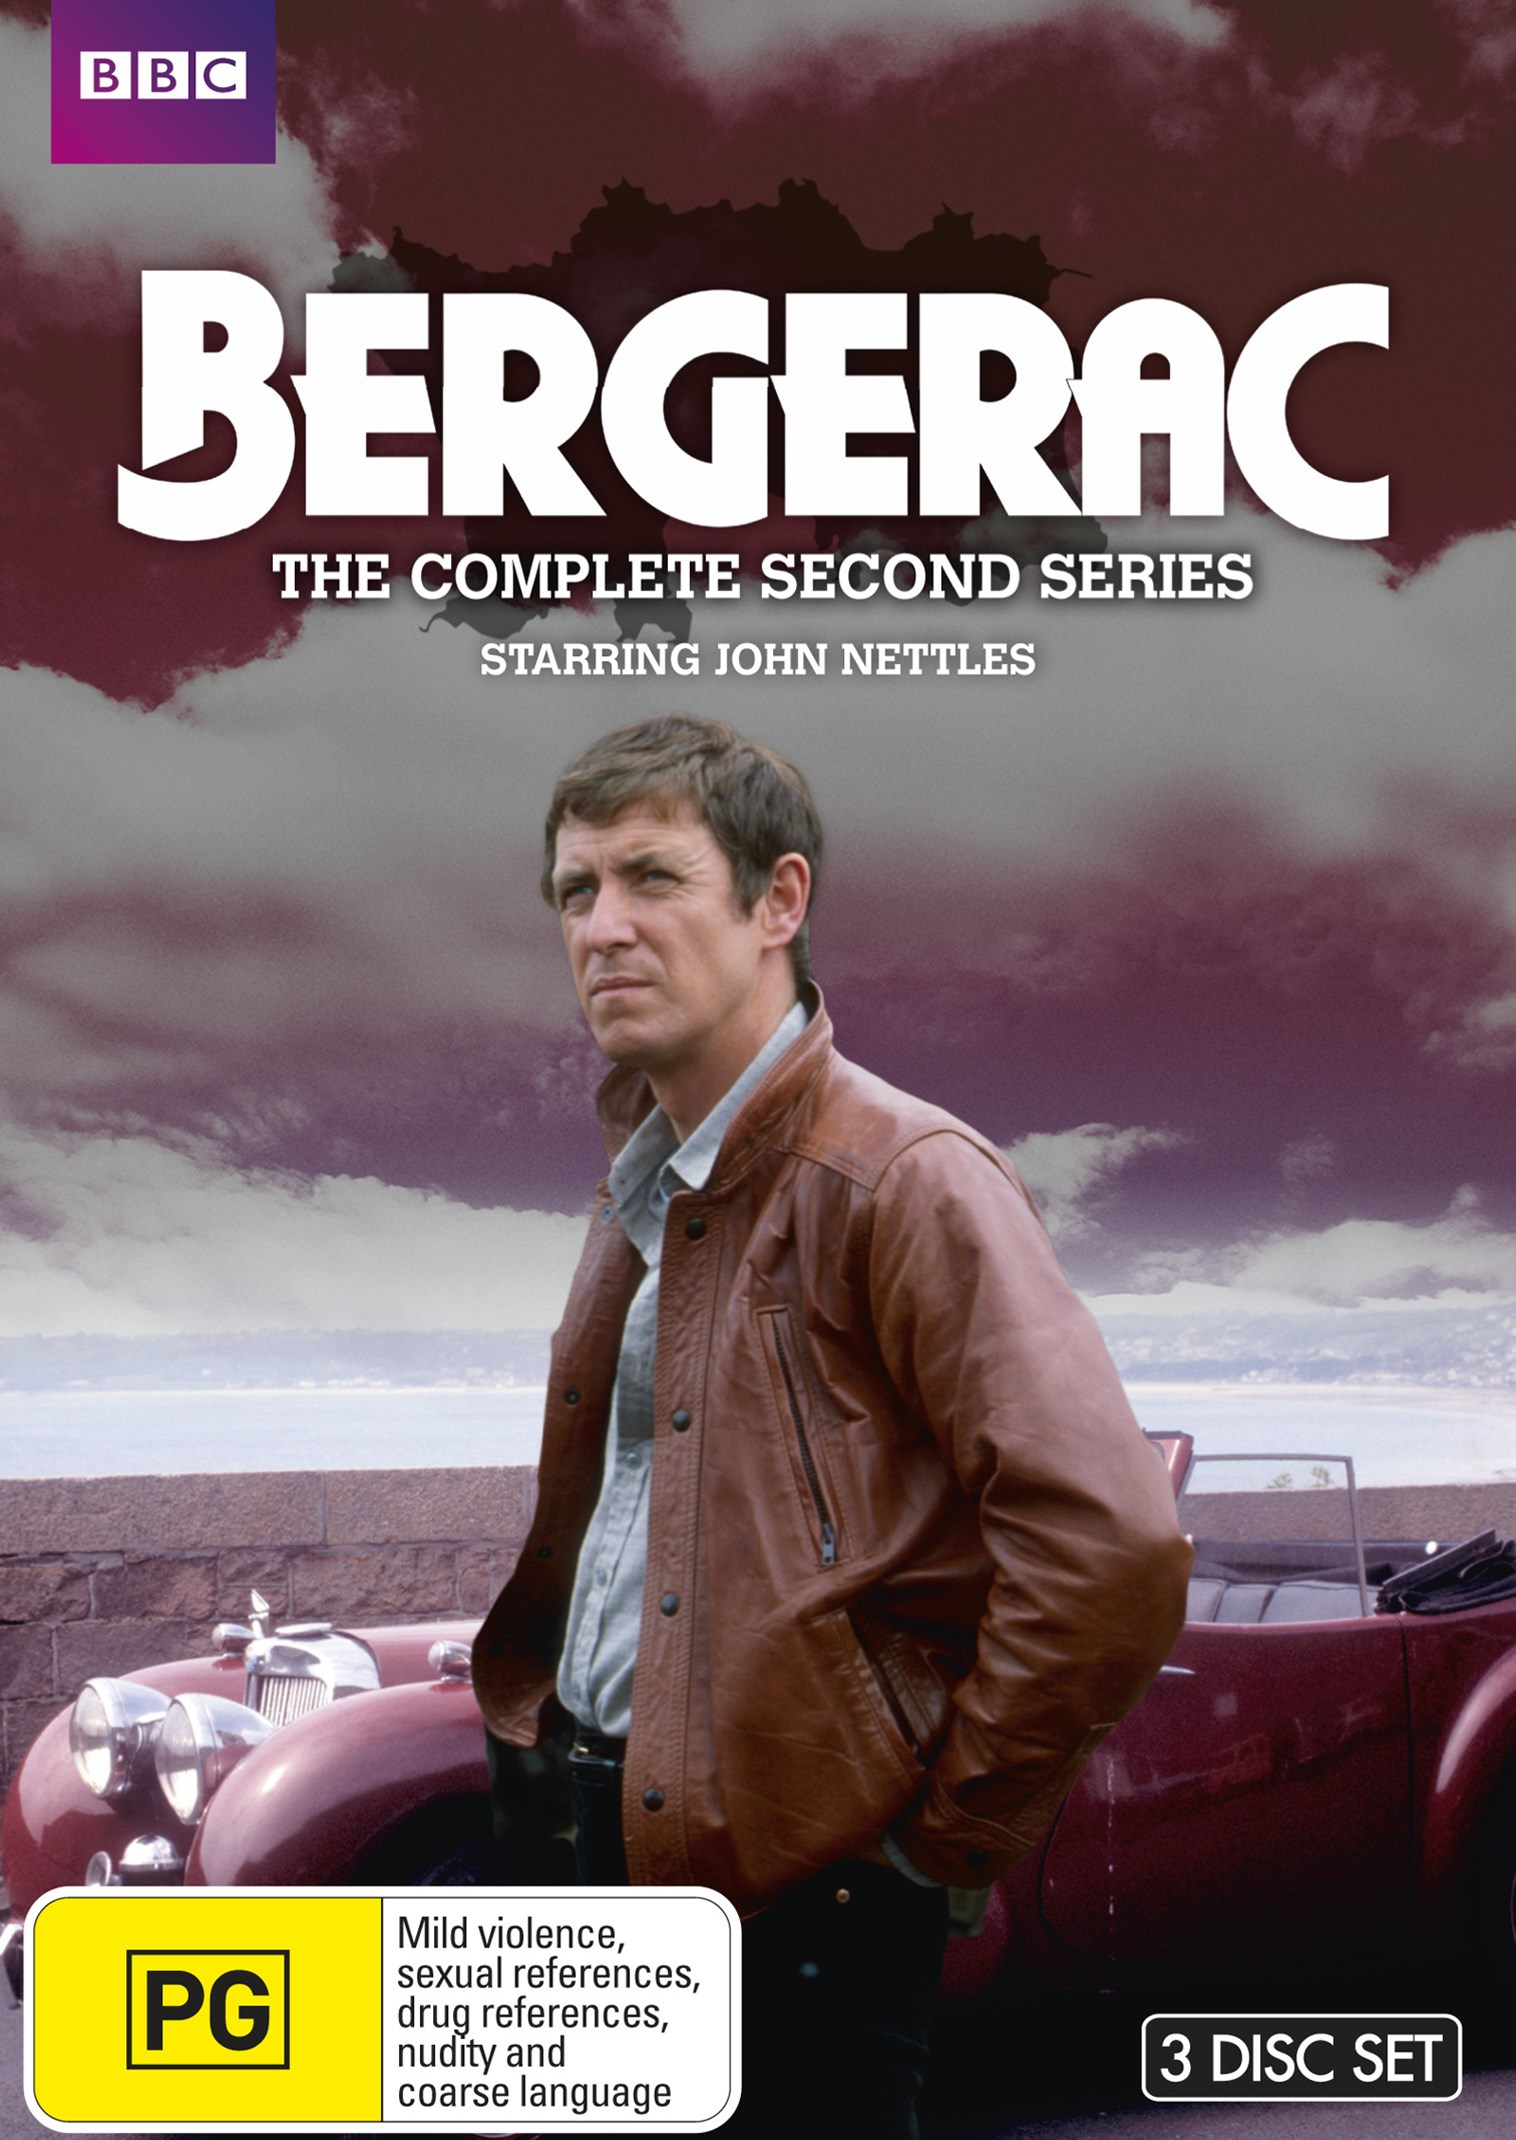 Bergerac - The Complete Second Series